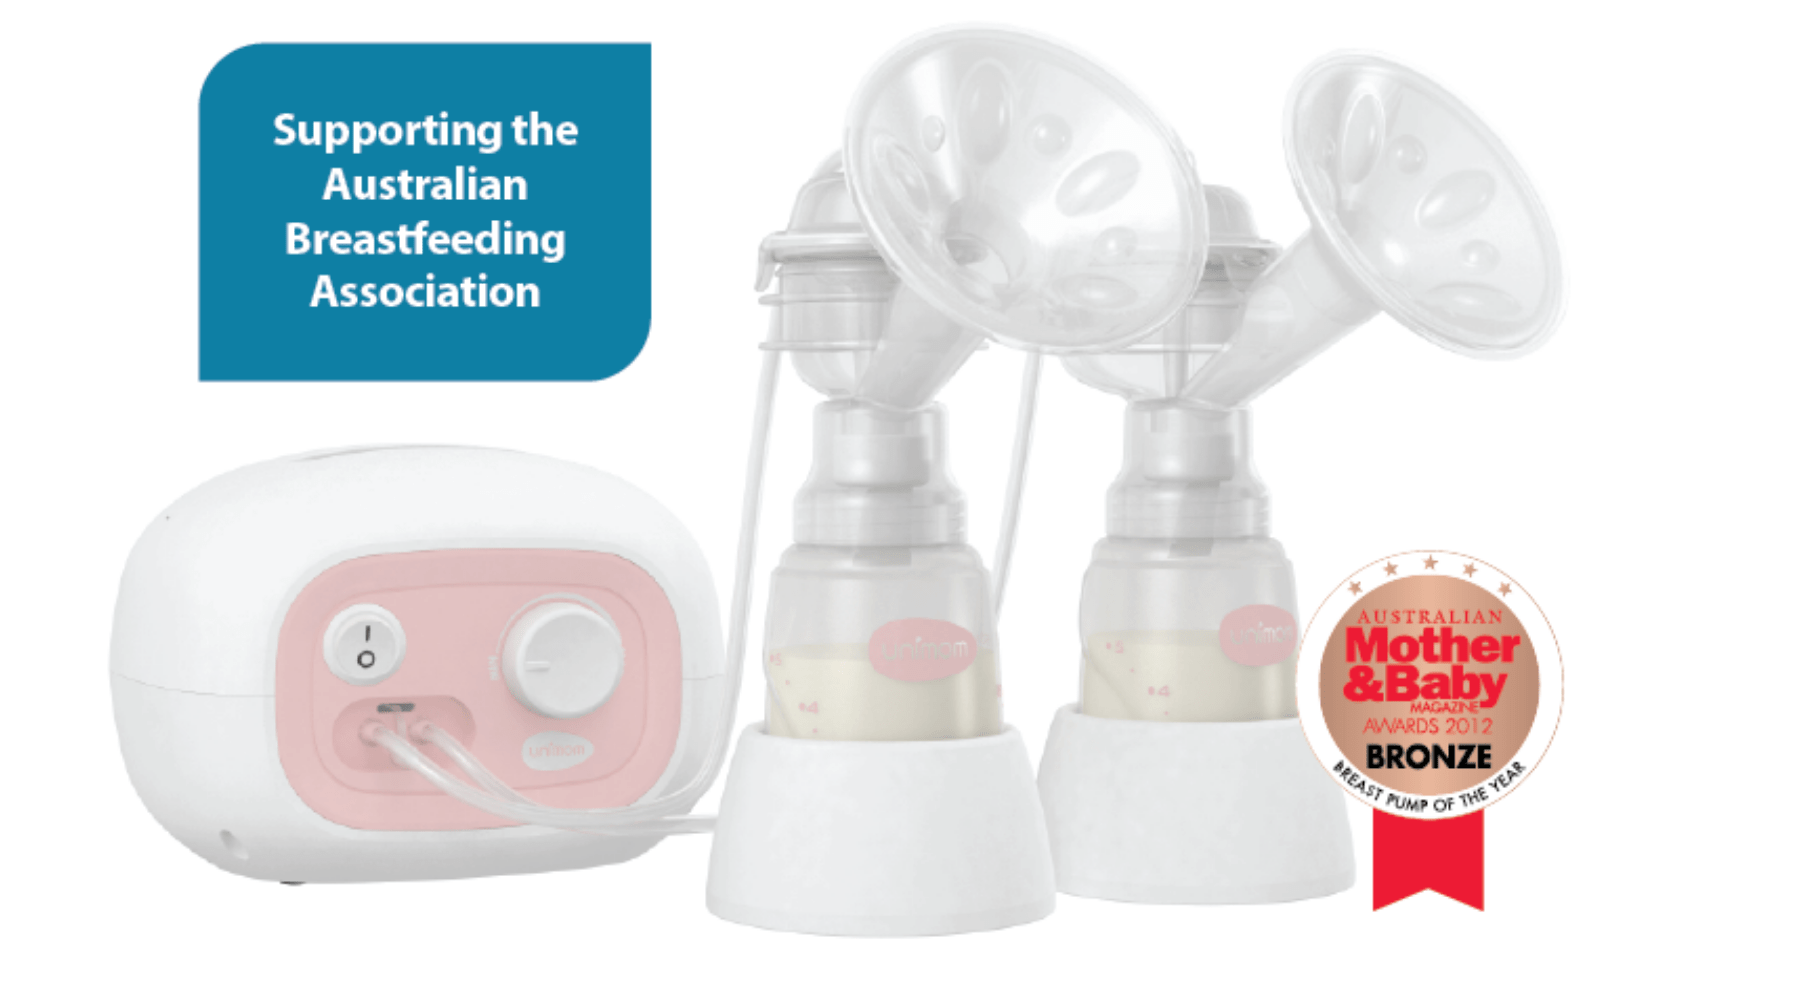 Hospital Grade Breast Pumps